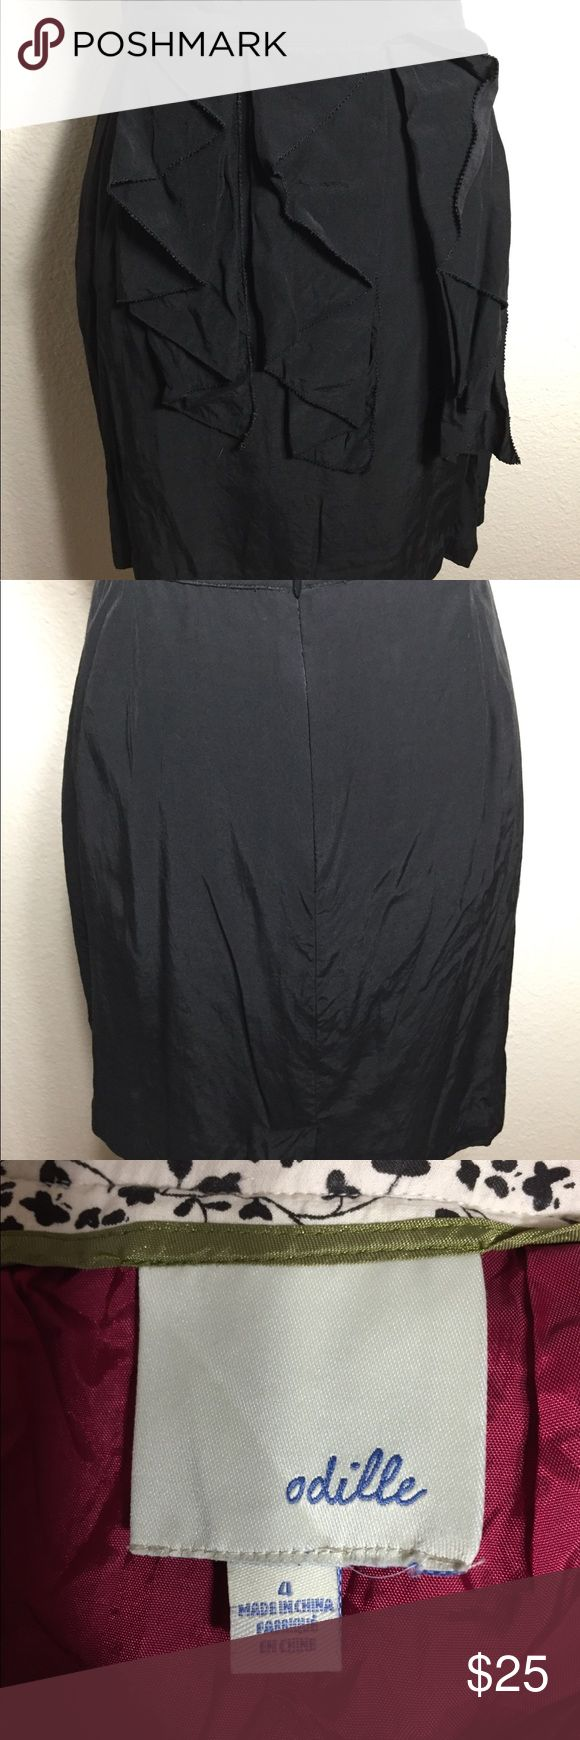 """Odille Anthropologie Brand Skirt Size 4. Black rayon exterior with red acetate lining. Front ruffle trim. Back zip closure. Waist measures 28"""". Length is 18"""". Good condition.   (W) Odille Skirts"""